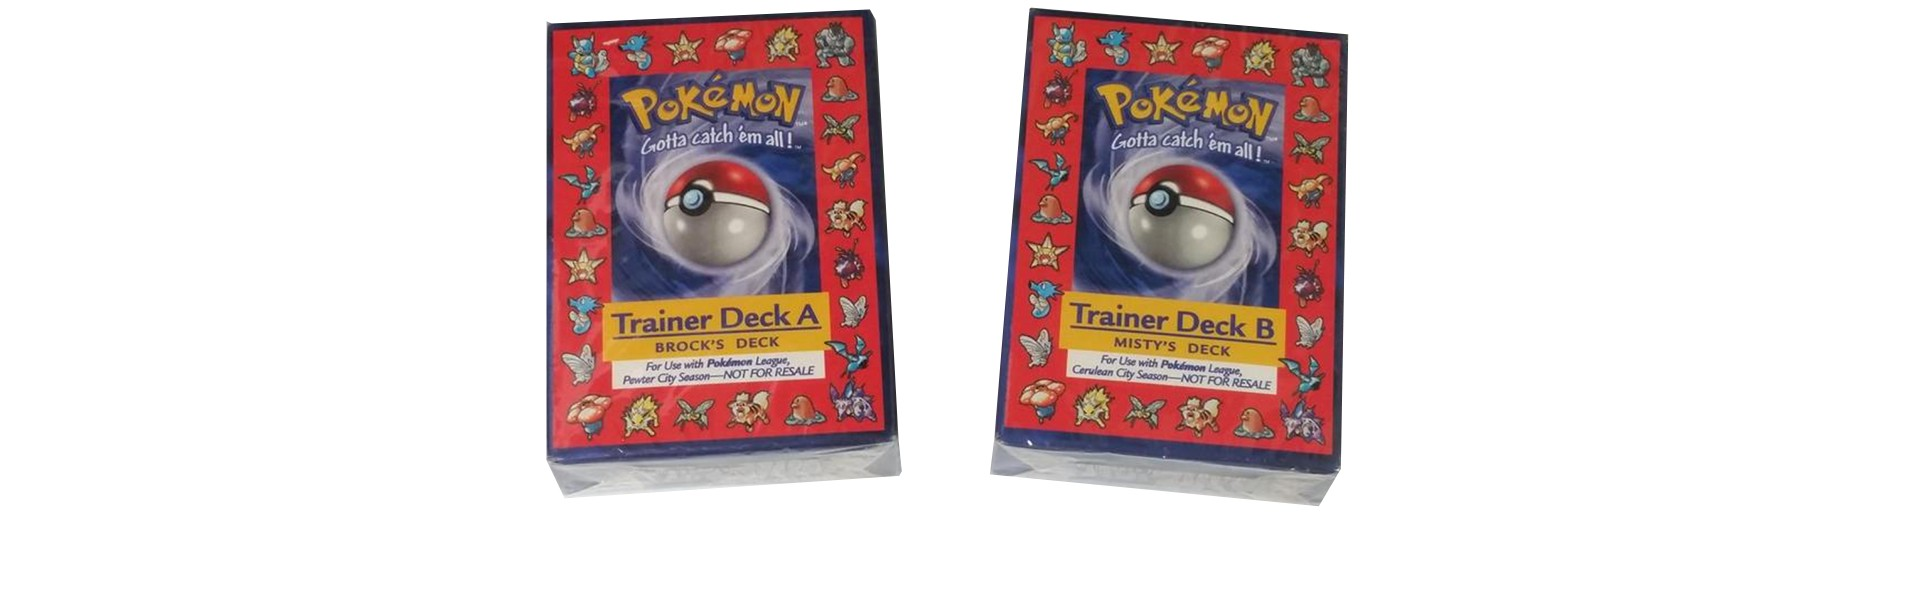 Brock's Trainer Deck A and Misty's Trainer Deck B